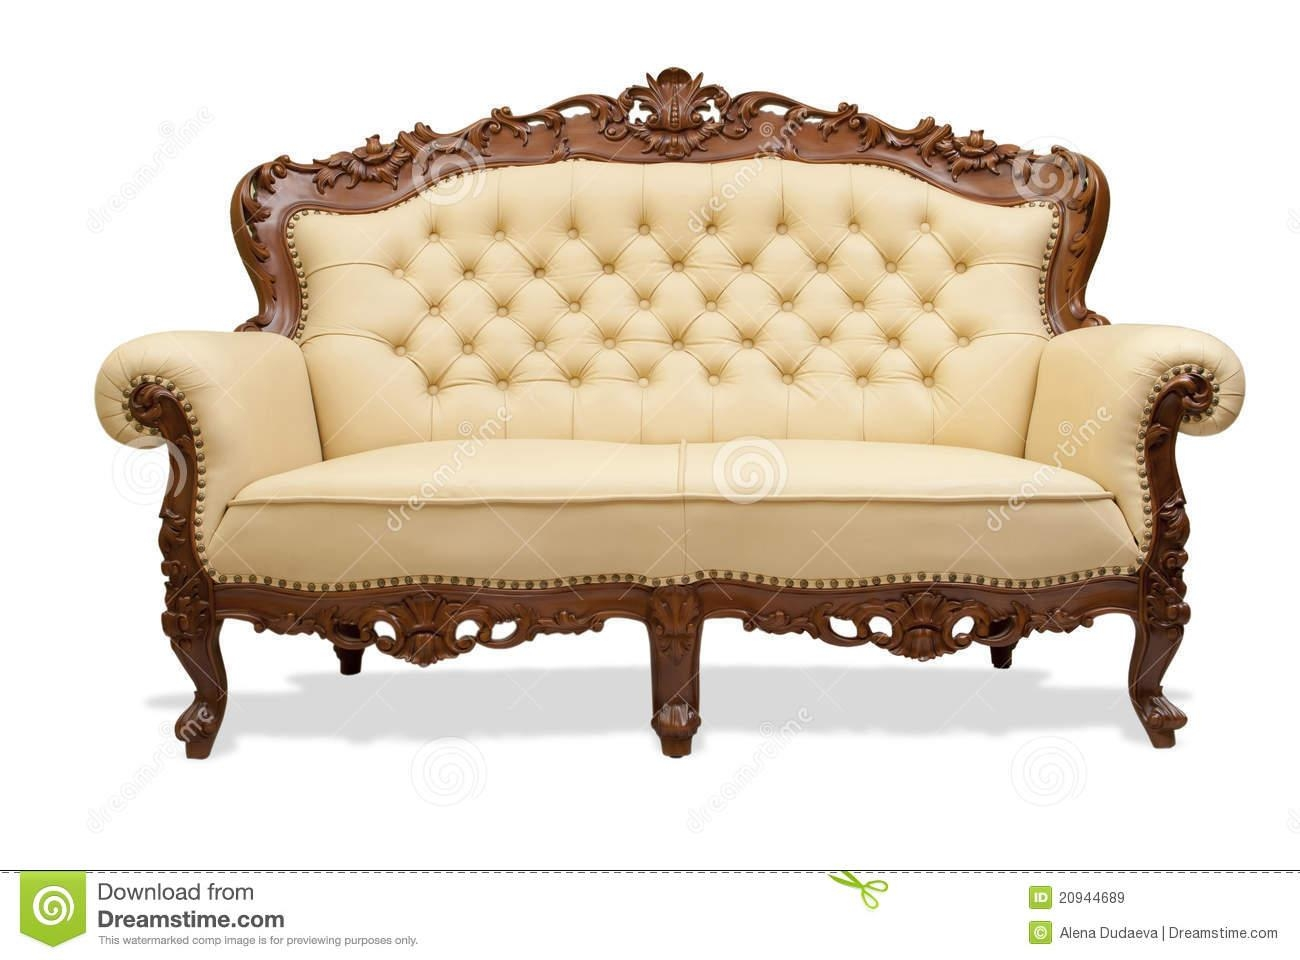 Classical Carved Wooden Sofa Isolate On White Stock Photos – Image Regarding Carved Wood Sofas (Image 7 of 20)